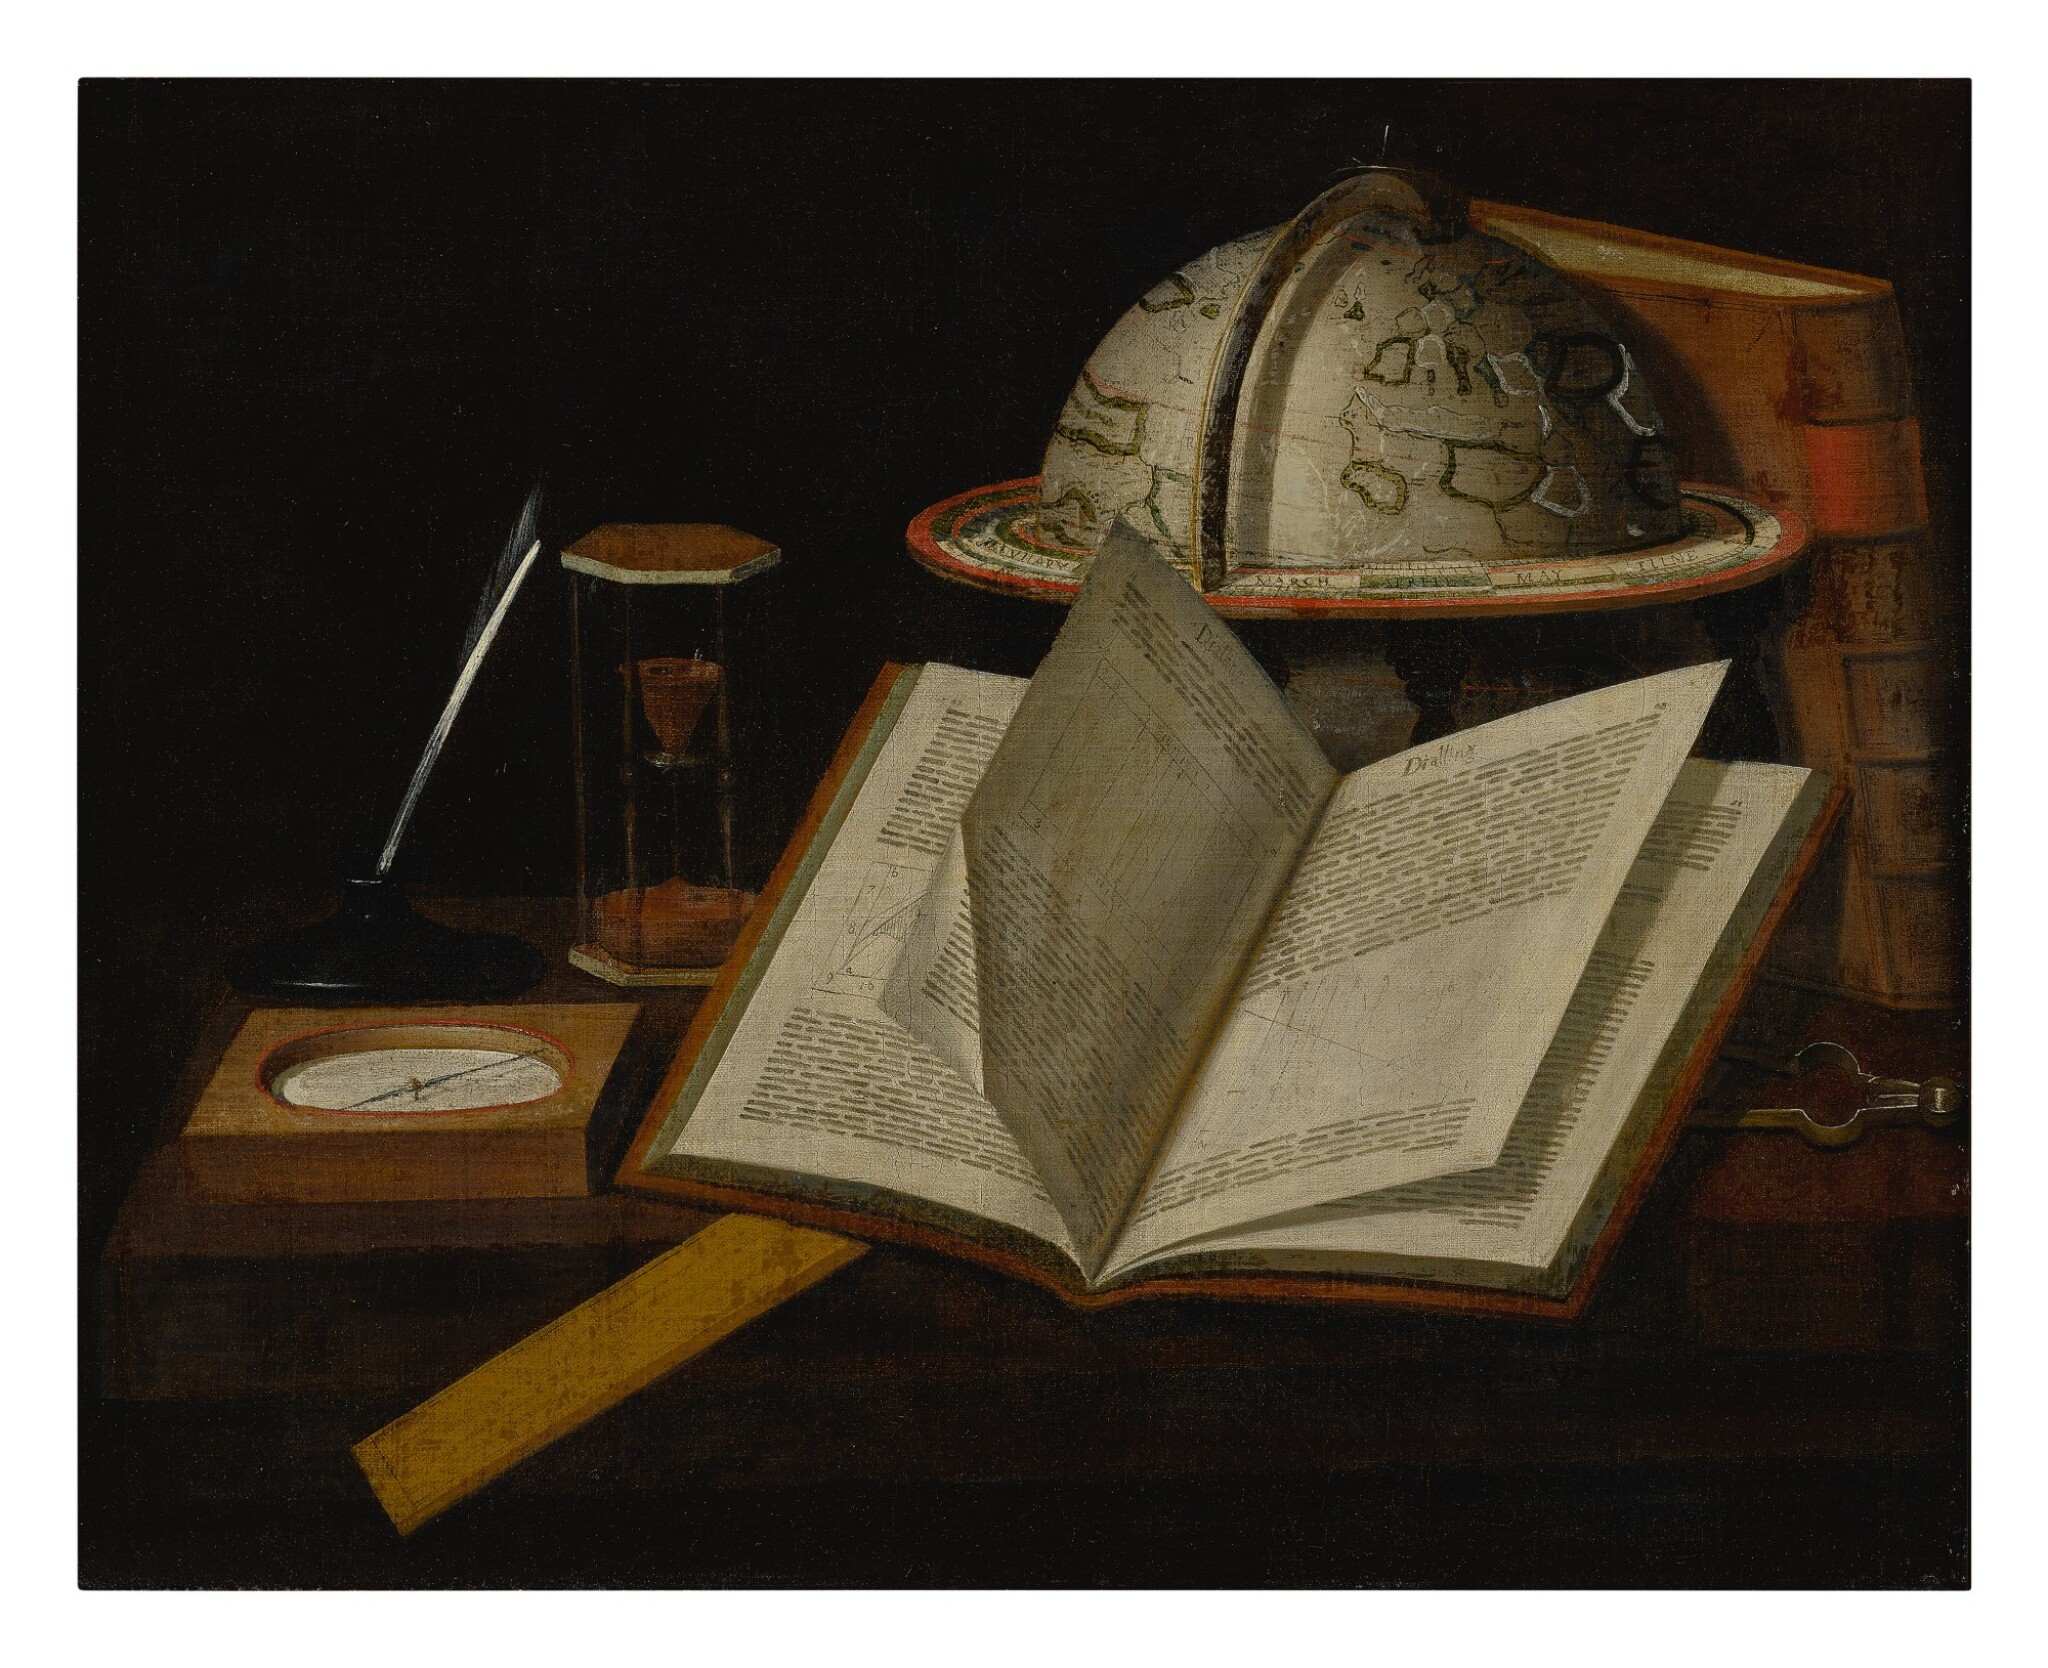 View full screen - View 1 of Lot 132. Sold Without Reserve   BRITISH SCHOOL, CIRCA 1700   A STILL LIFE OF VARIOUS SCIENTIFIC OBJECTS RELATED TO THE MEASUREMENT OF TIME AND NAVIGATION.